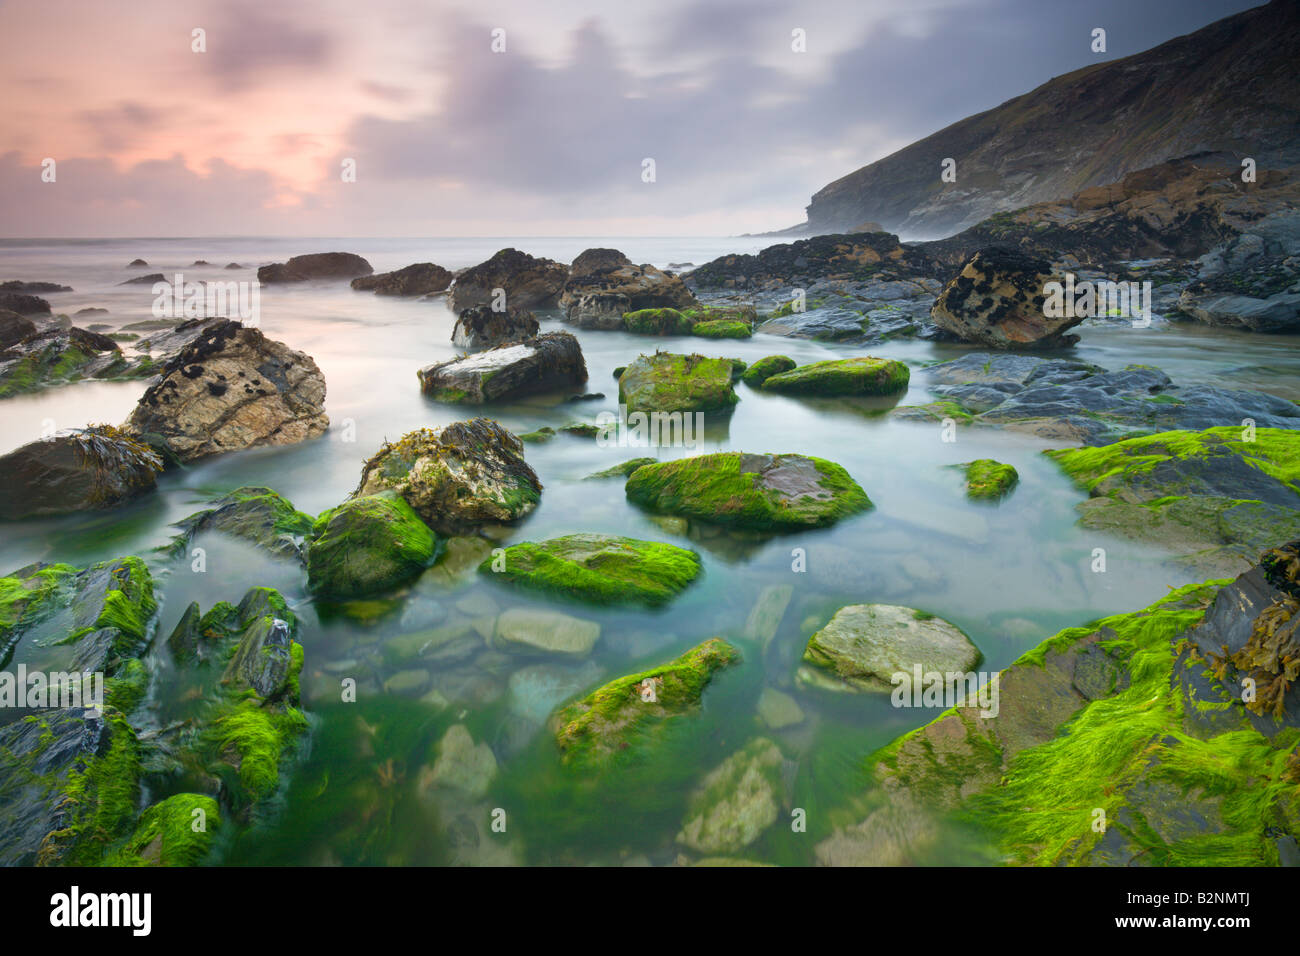 Vibrant green algae exposed at low tide at Tregardock Beach North Cornwall England - Stock Image